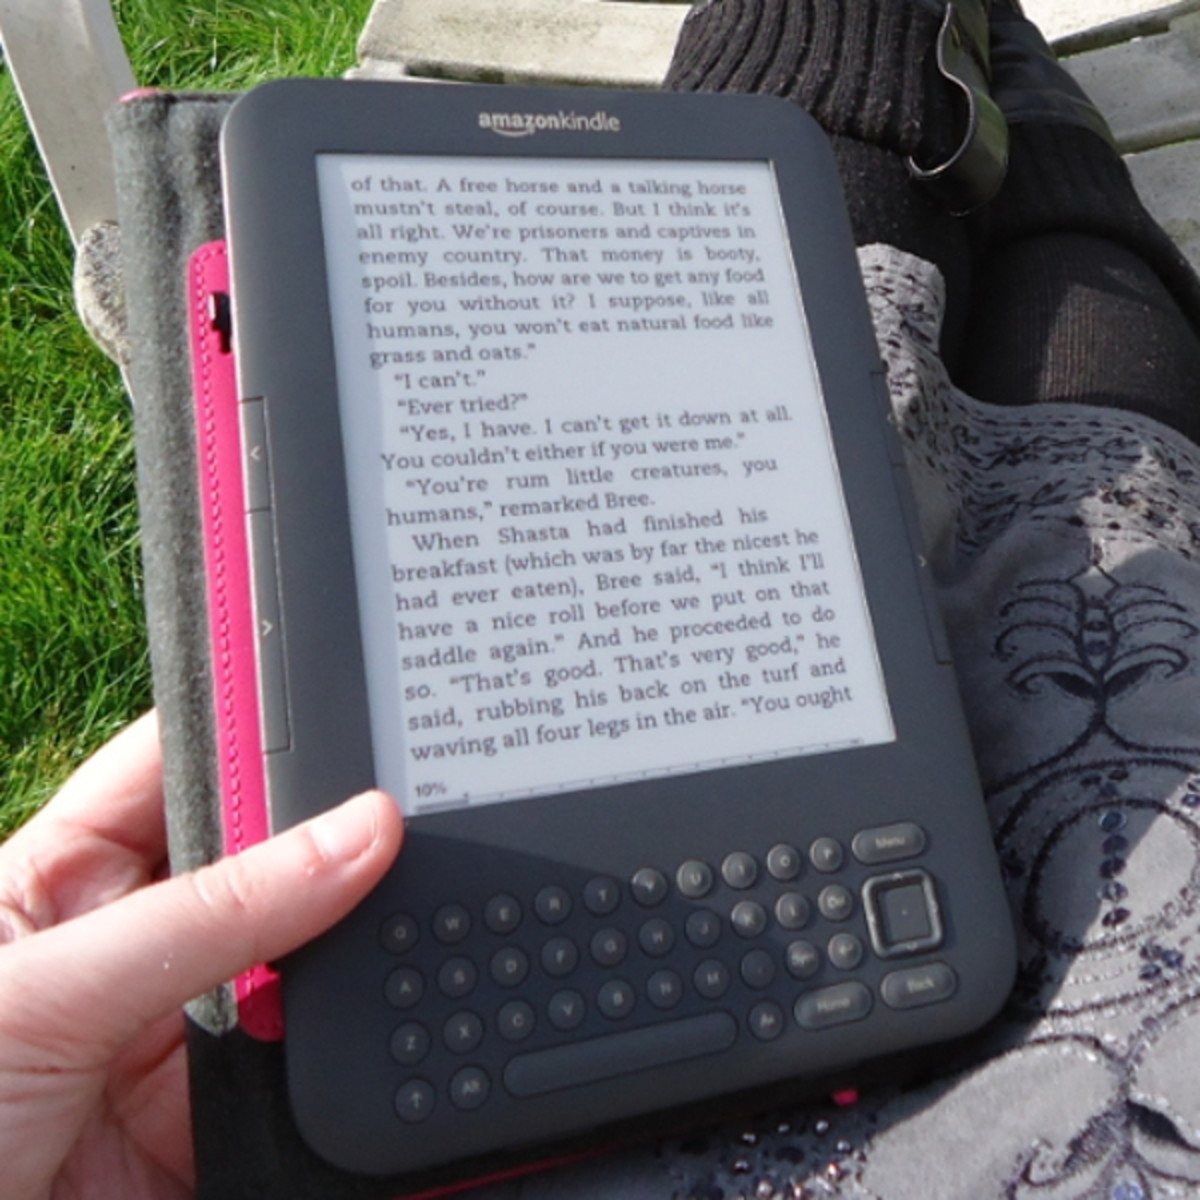 Fanfiction on Your Kindle